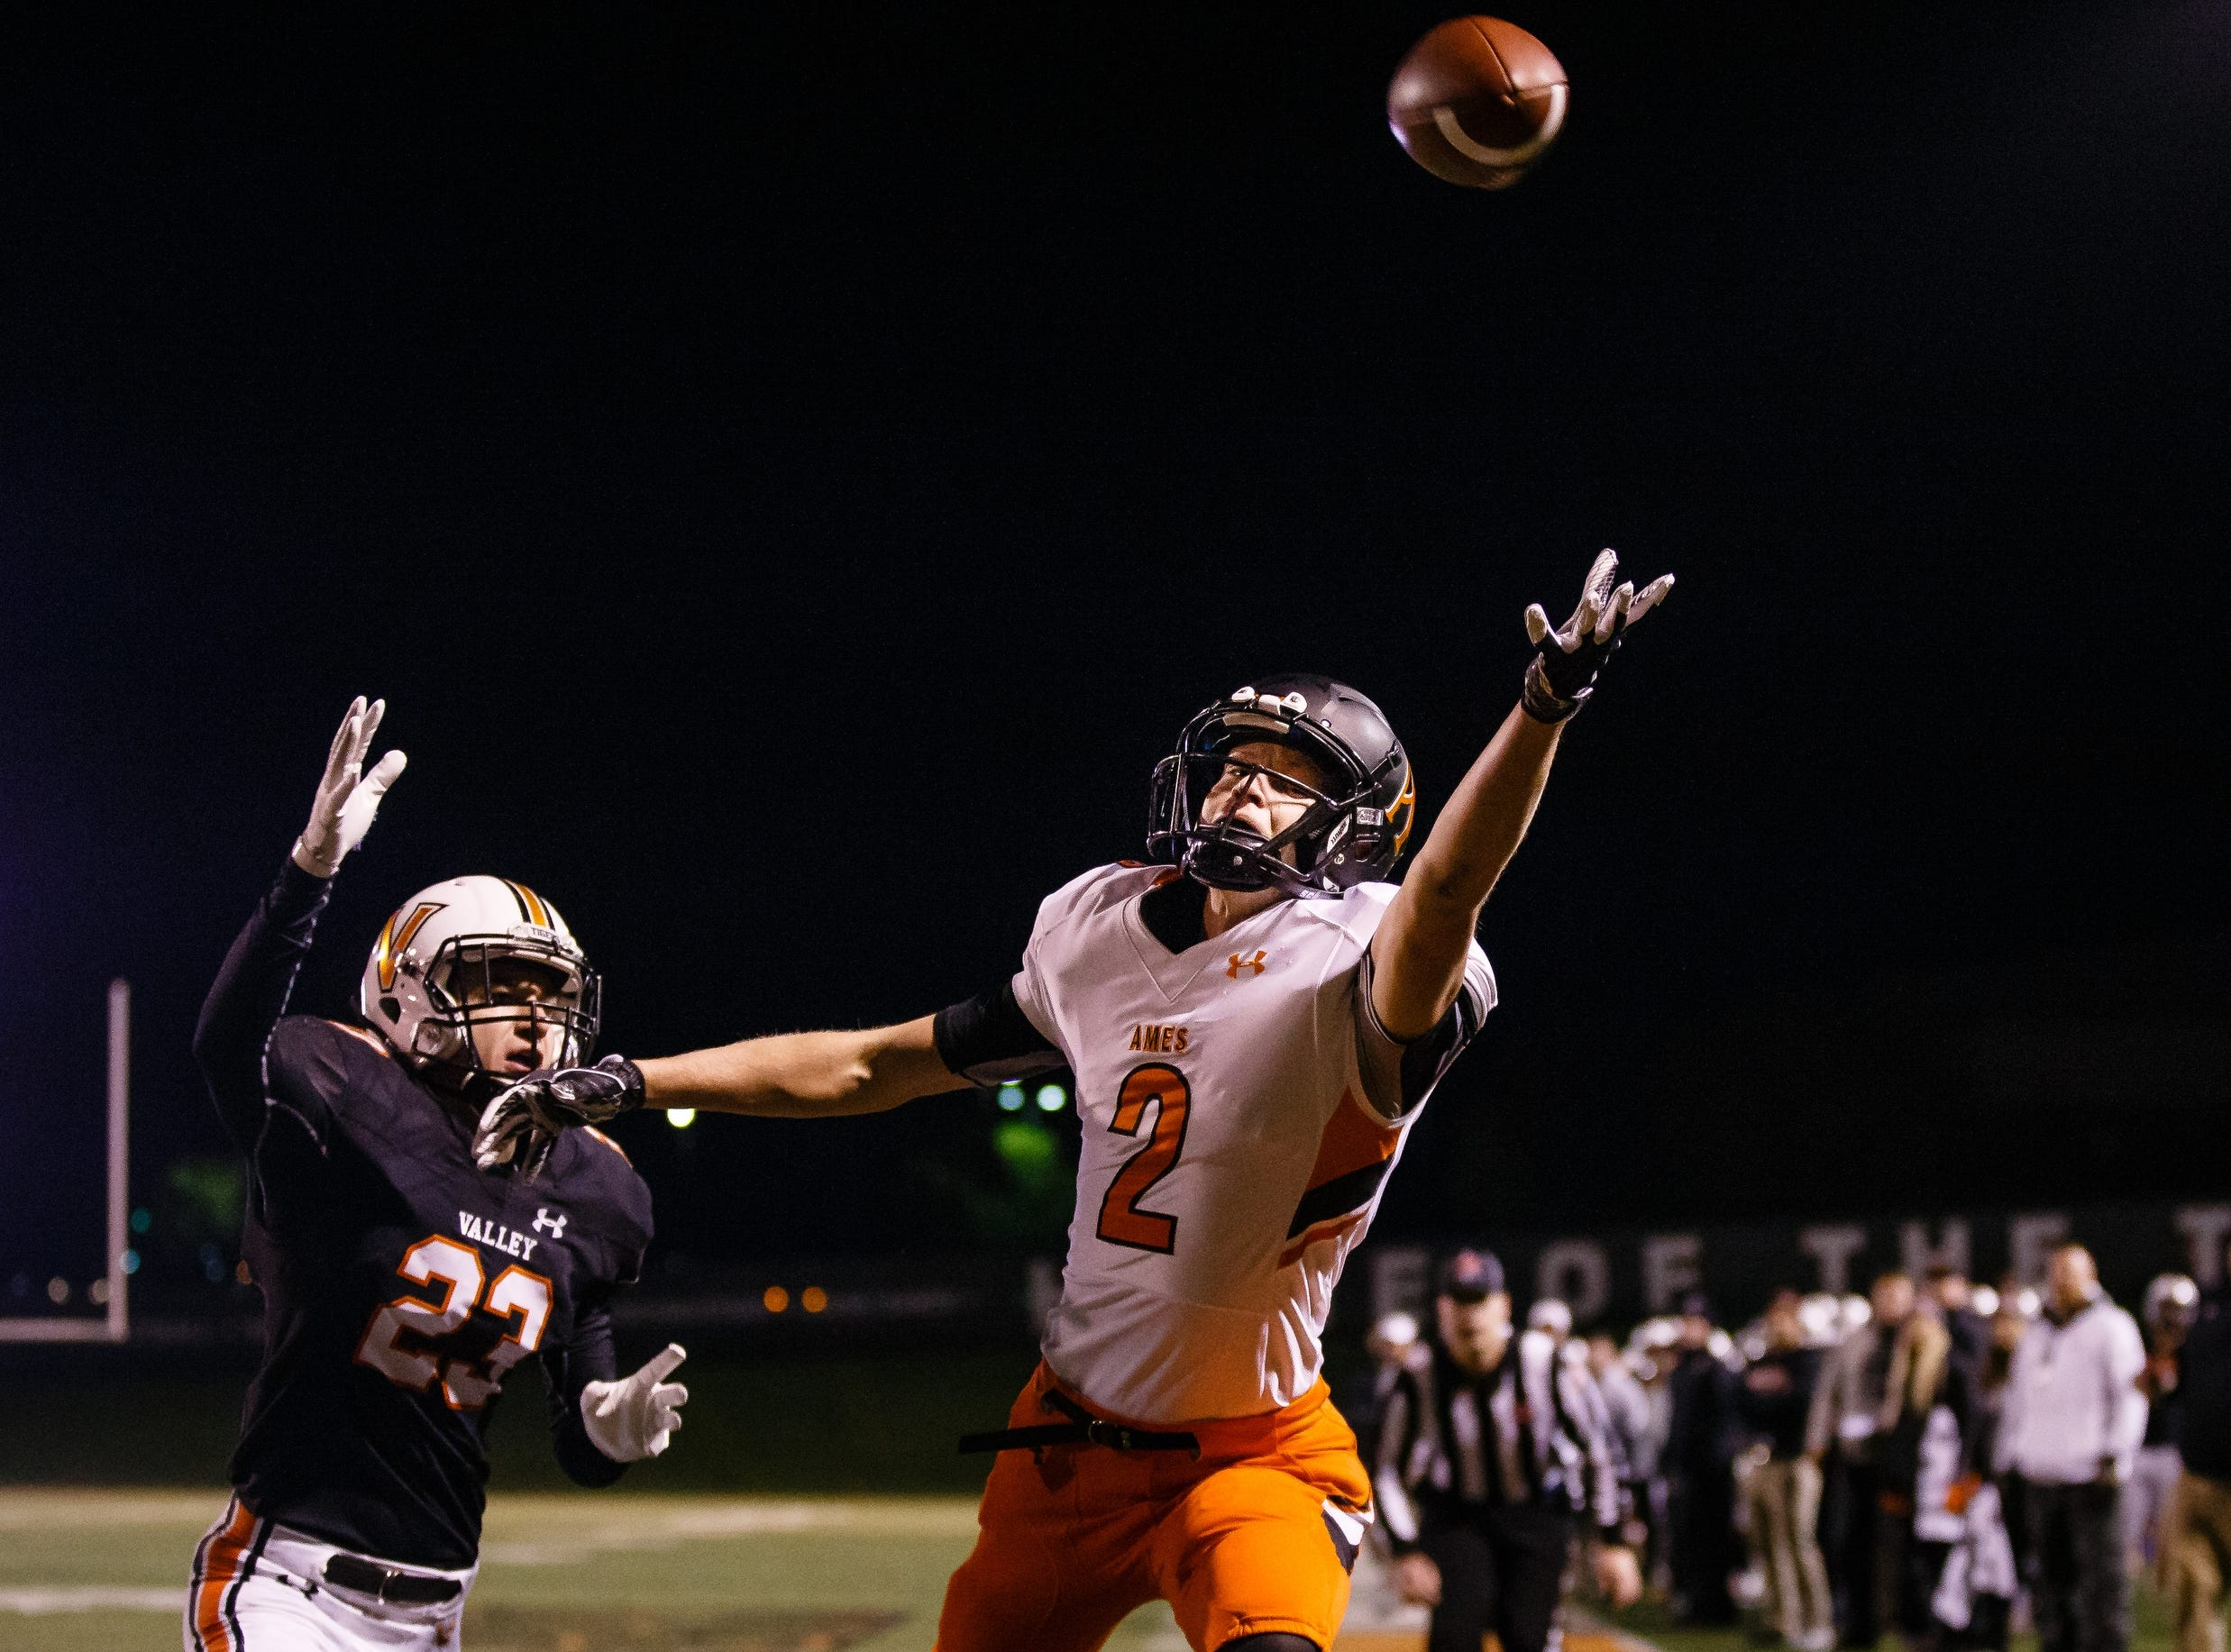 Ames' Will Krapfl (2) can't reach a pass during their football game against Valley at Valley Stadium on Friday, Oct. 12, 2018, in West Des Moines. Valley takes a 31-0 lead into halftime.